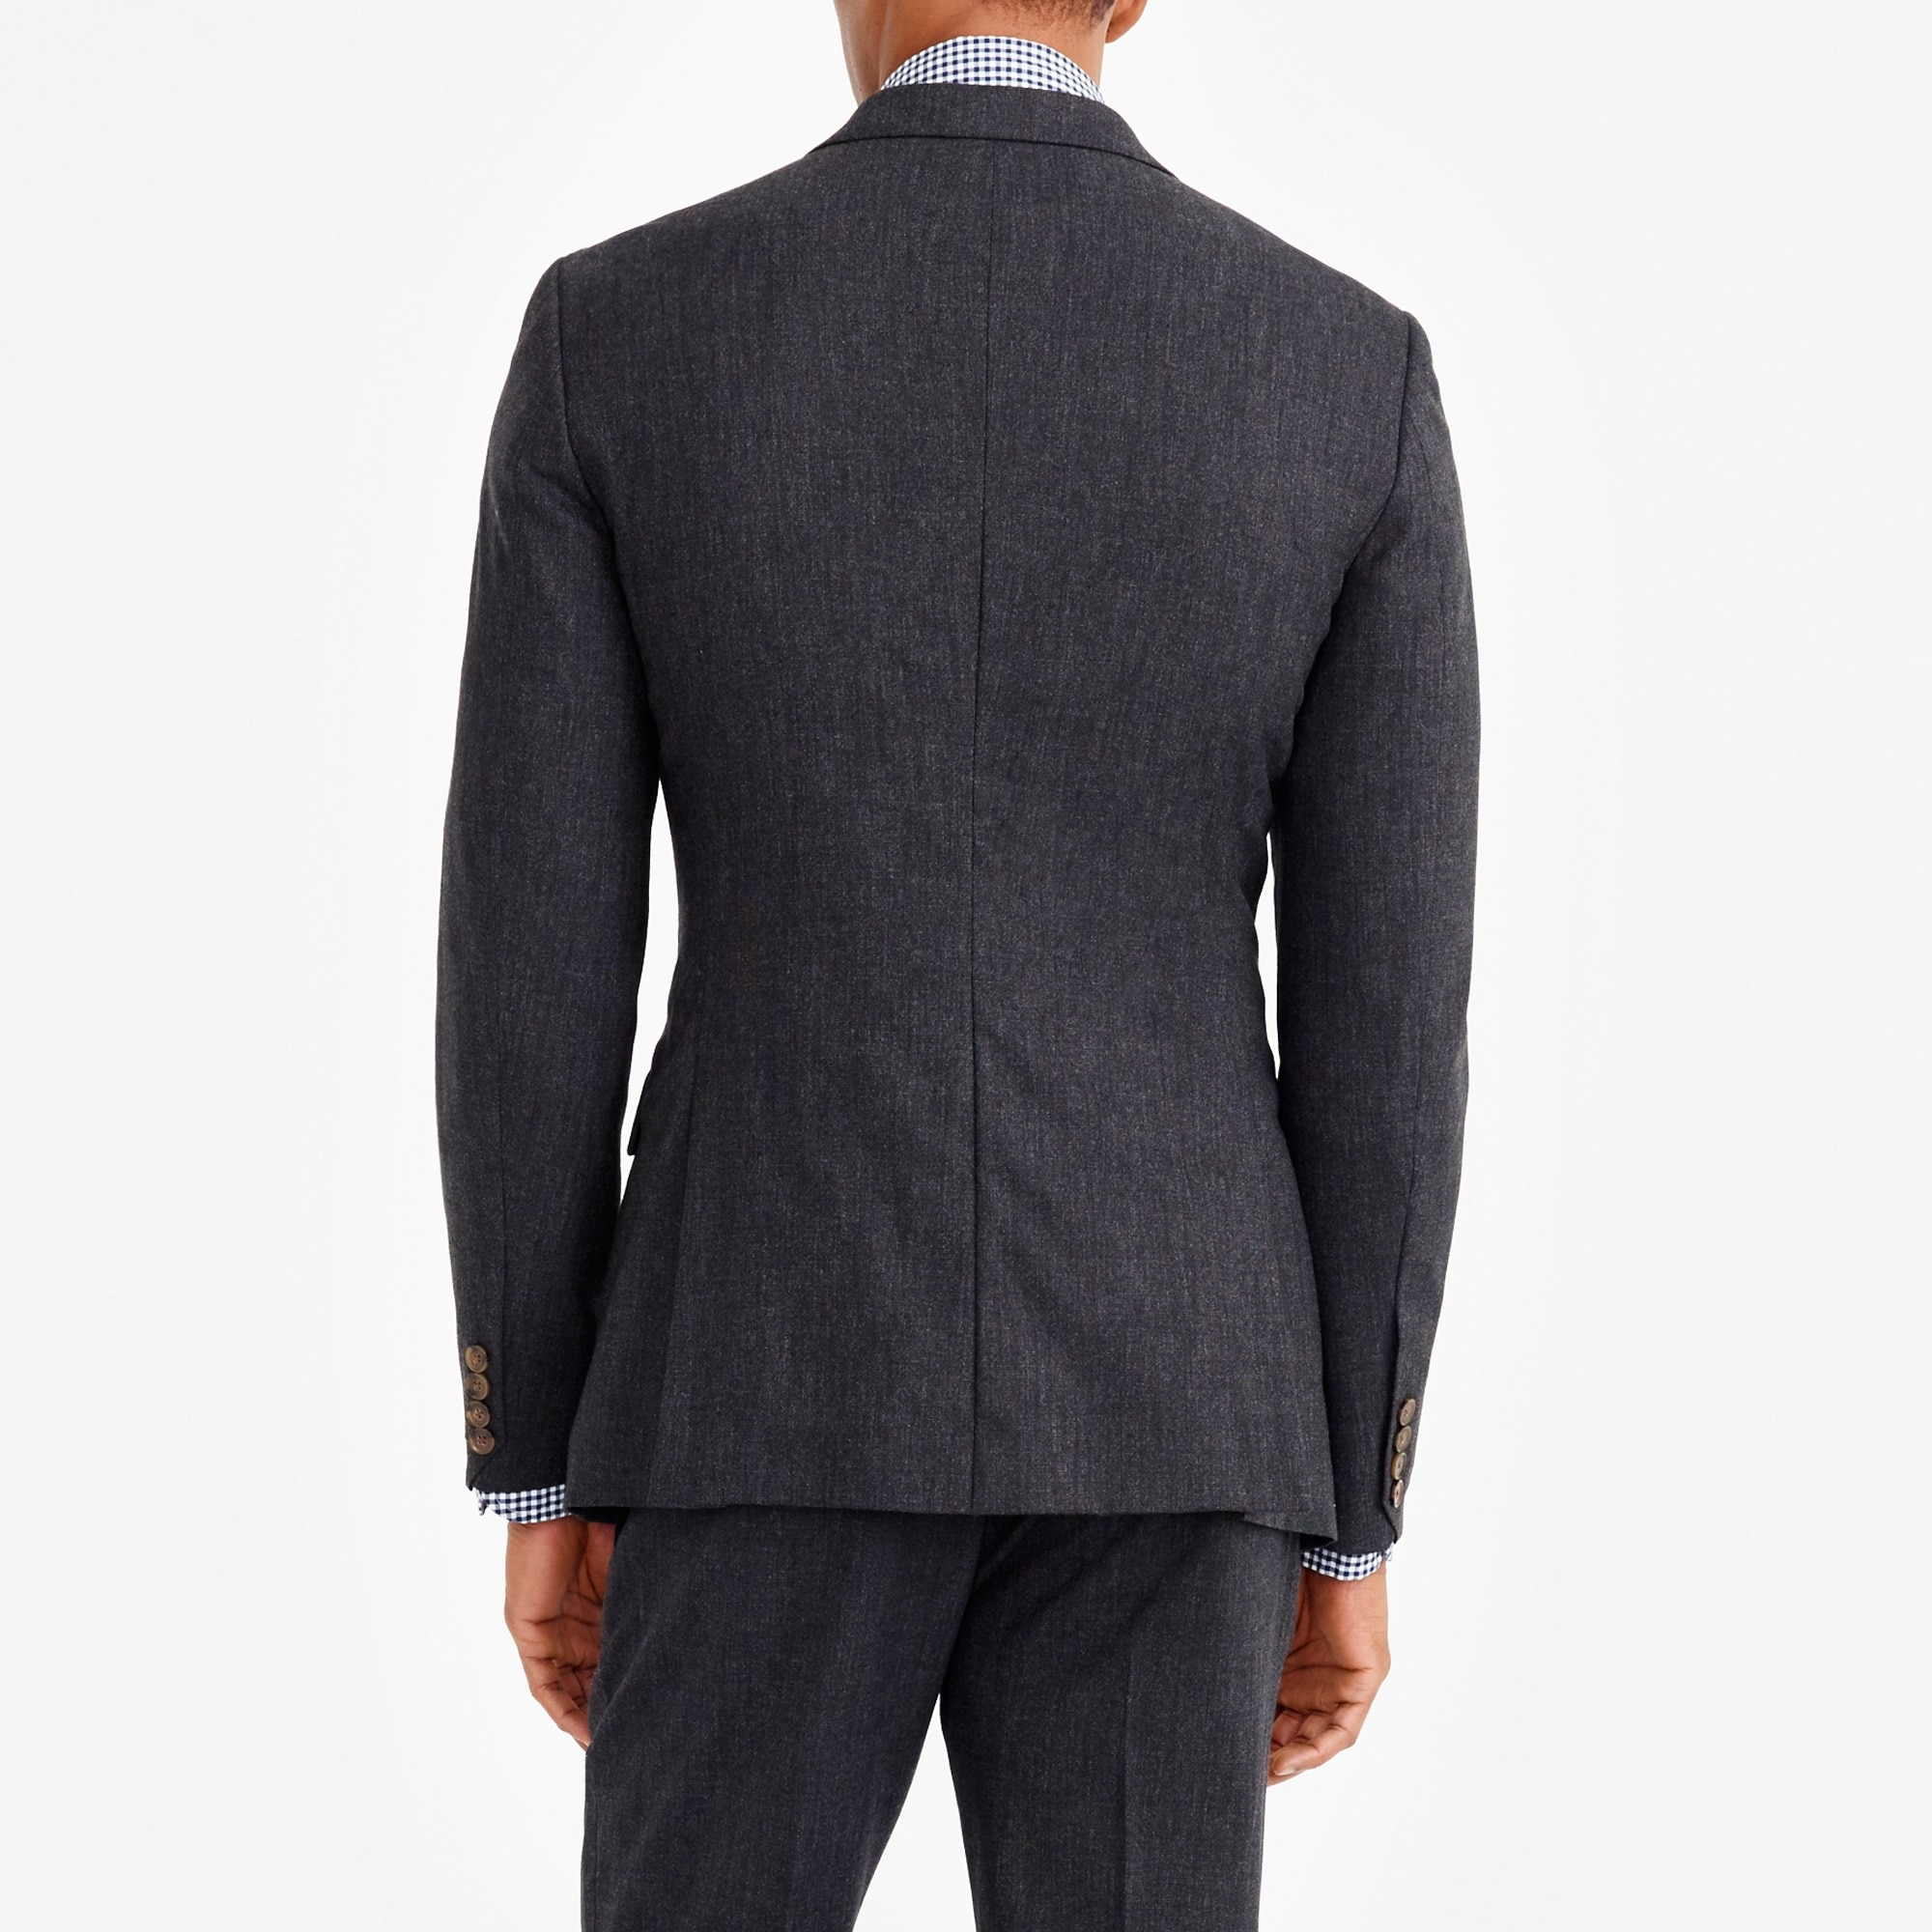 Image 4 for Thompson suit jacket in flex wool